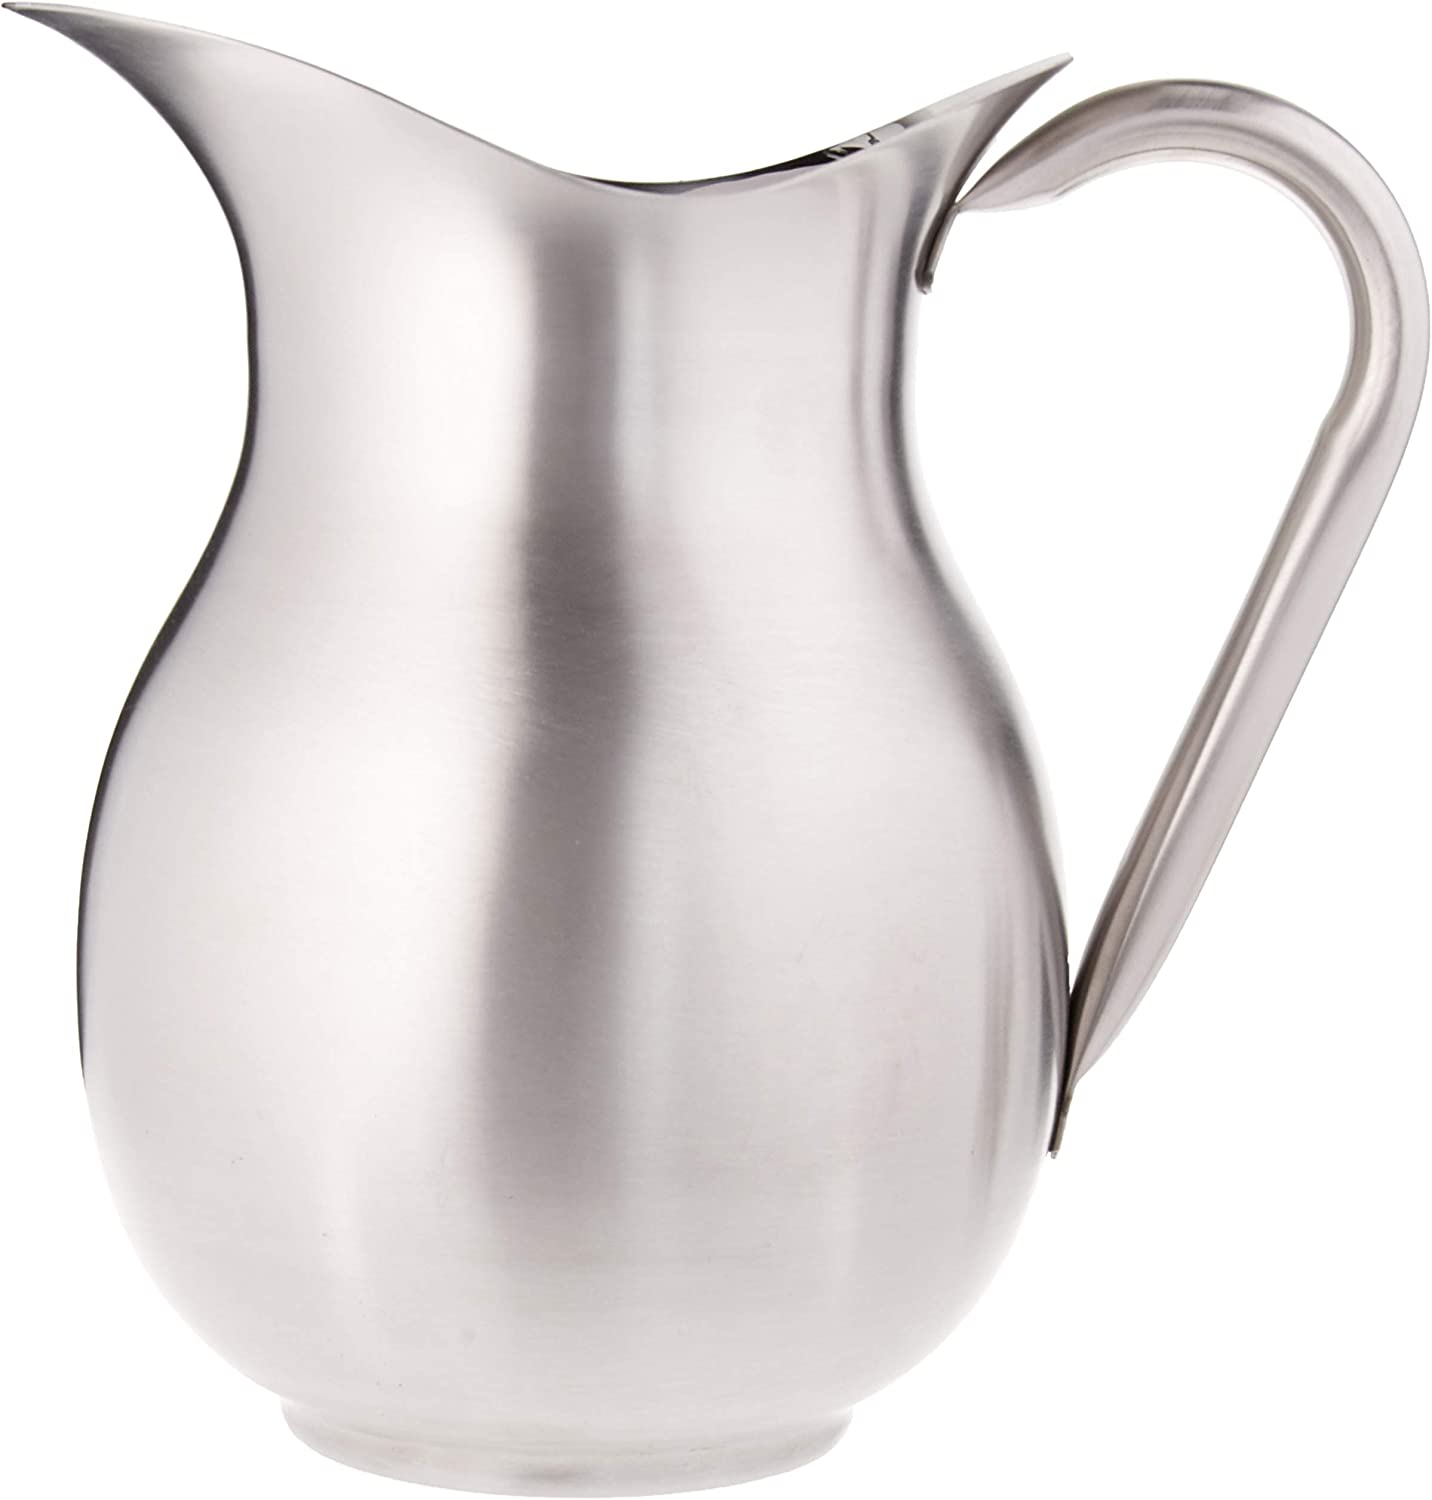 Vollrath 3-Quart Bell-Shaped Water Pitcher, Stainless Steel